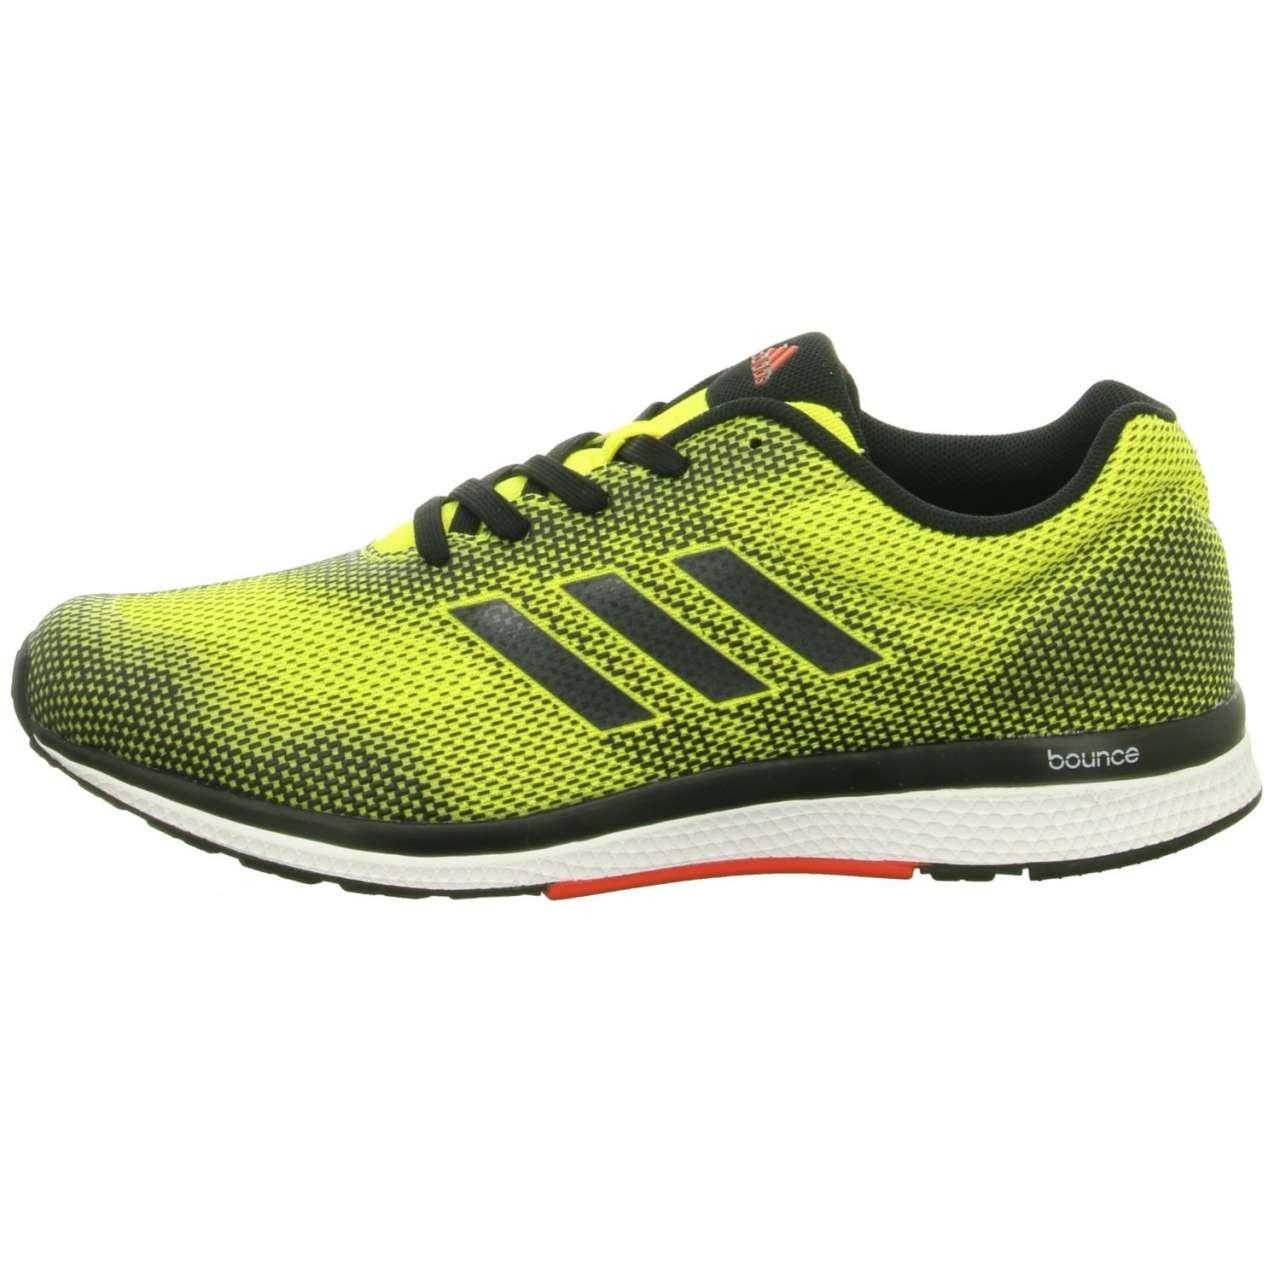 190f44d09039e Adidas - Trainers Yellow Mana Bounce 2 M Aramis for Men - Lyst. View  fullscreen